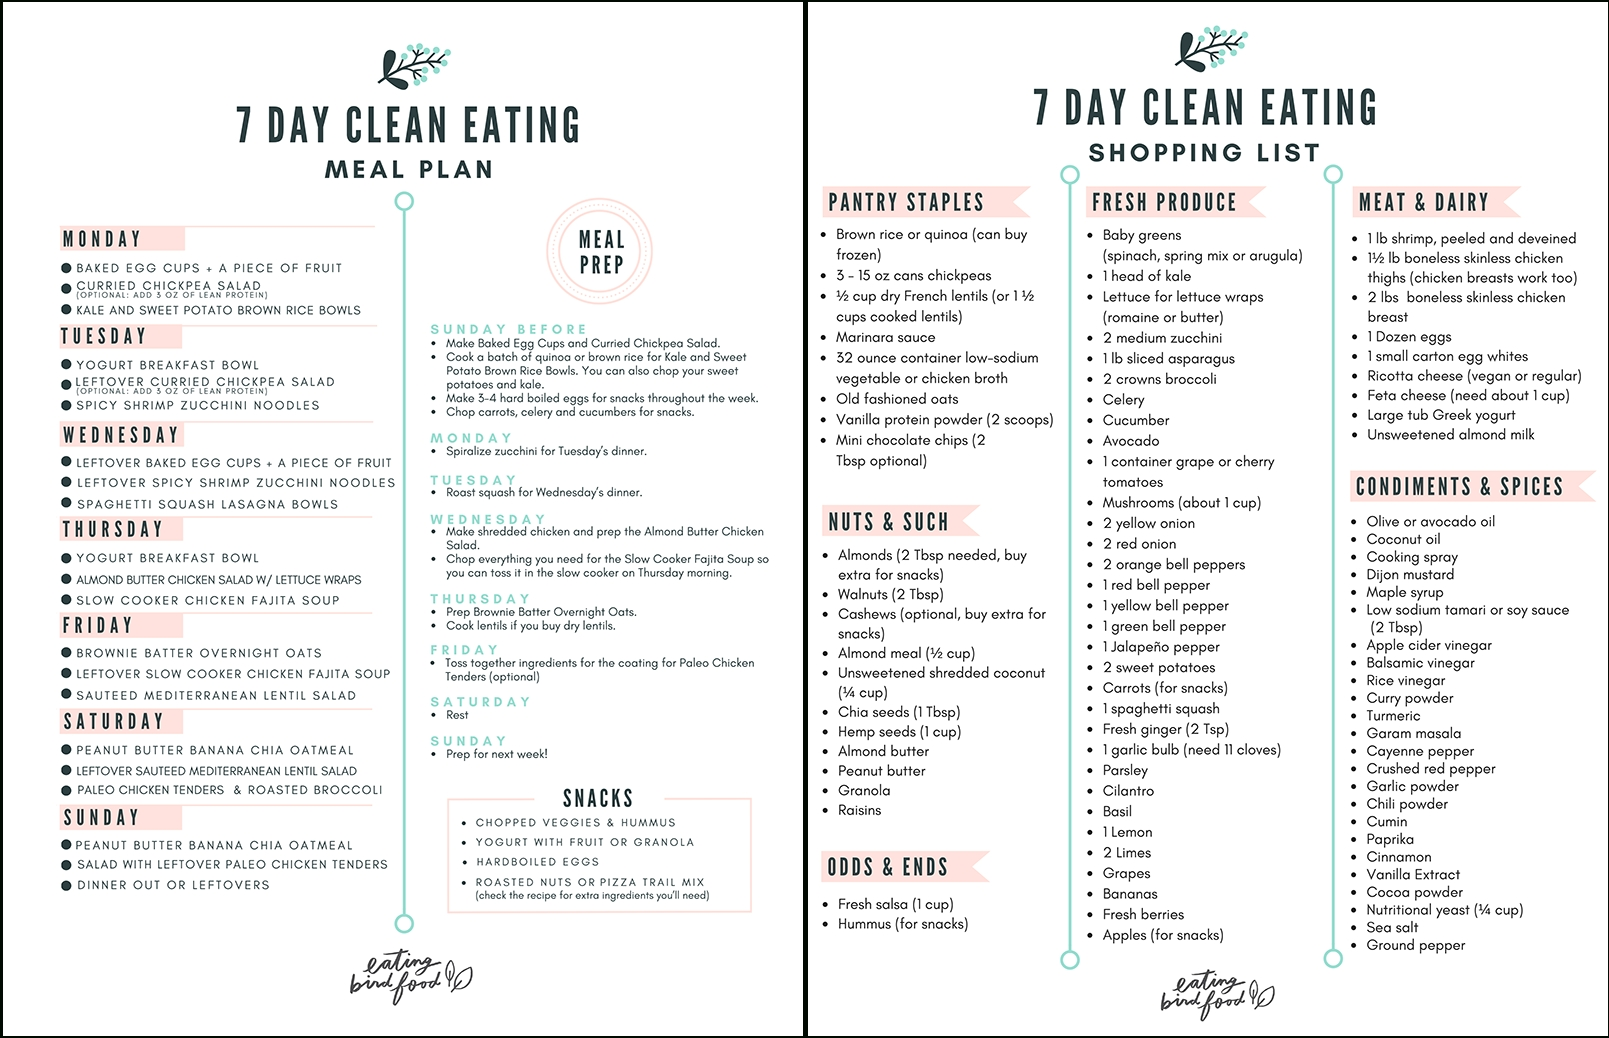 7 Day Healthy Meal Plan & Shopping List - Eating Bird Food throughout Weekly Meal Planner With Grocery List 26302